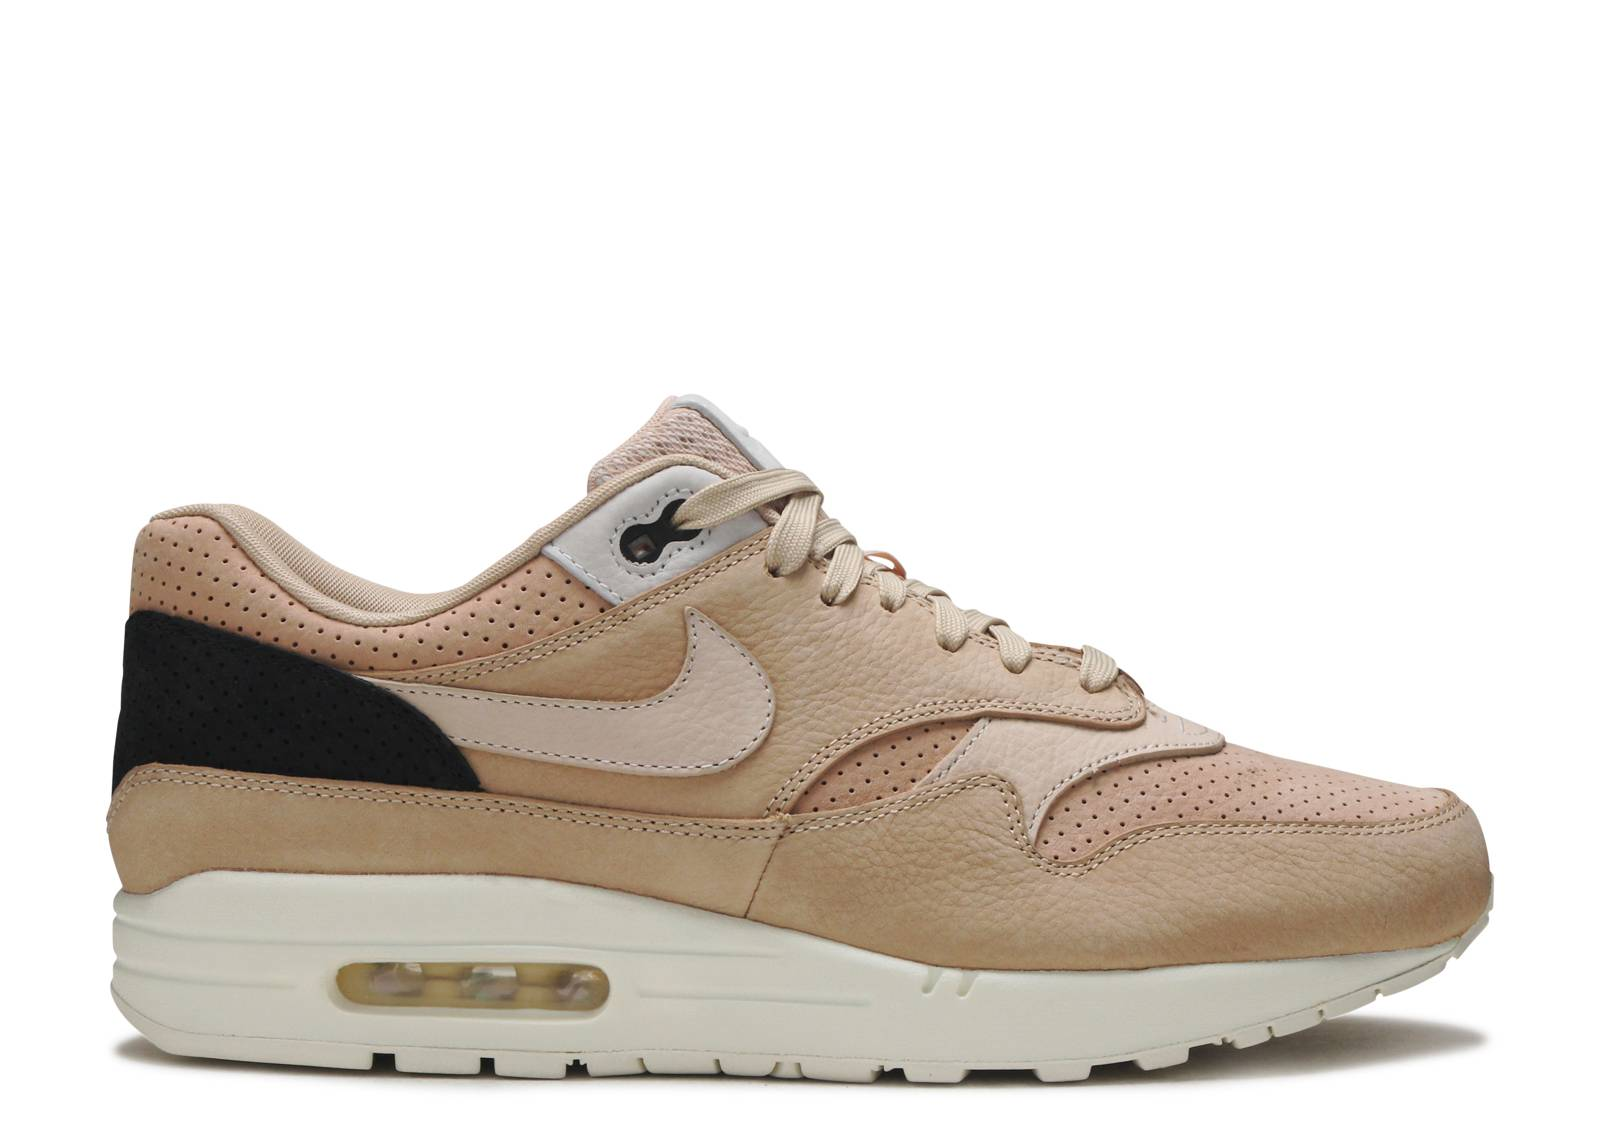 premium selection f2f5d 72dea nike. nikelab air max 1 pinnacle